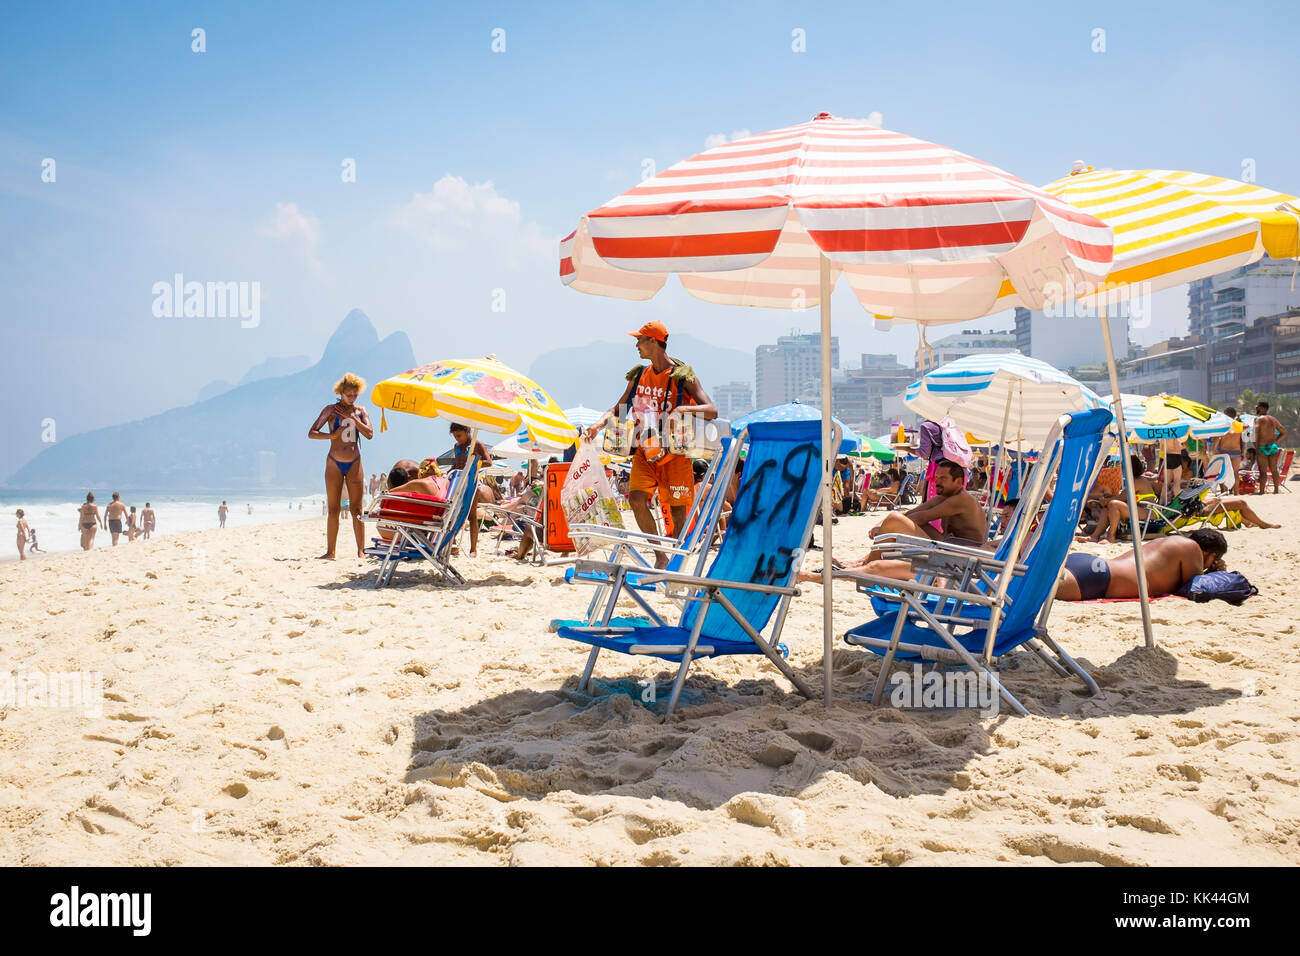 RIO DE JANEIRO - MARCH 06, 2016: A beach vendor selling South American mate iced tea and snacks walks in bright - Stock Image